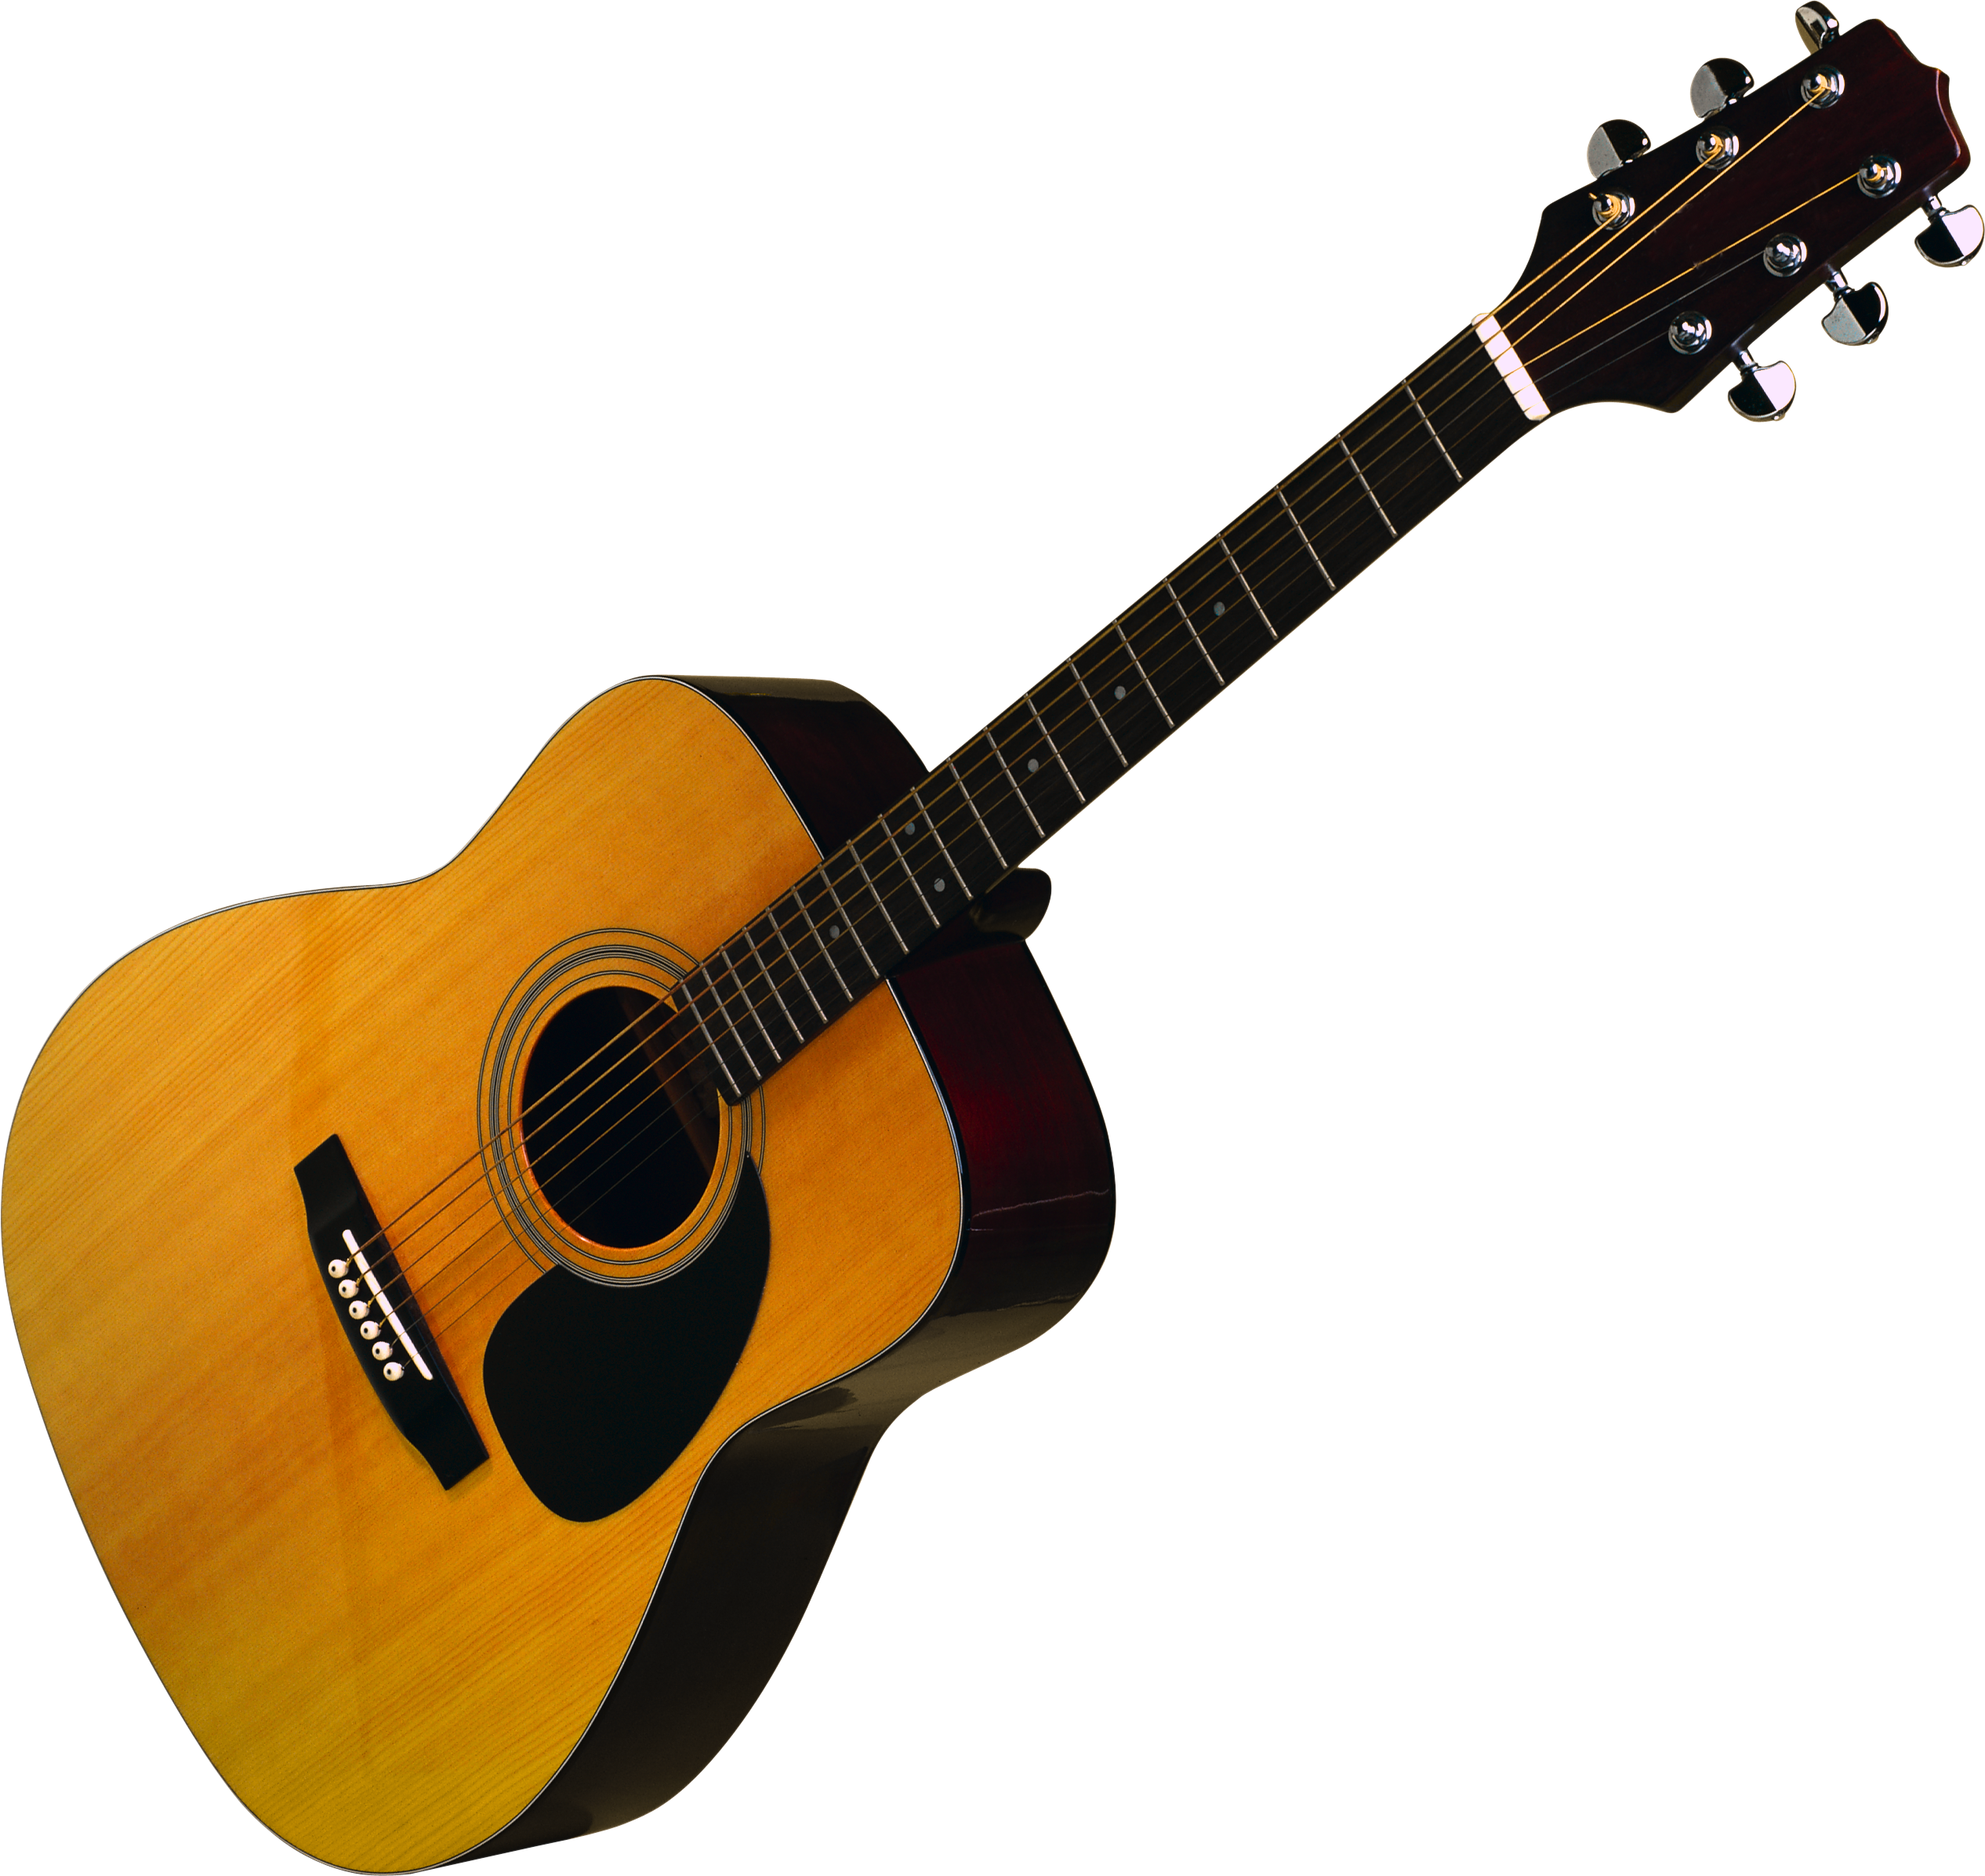 Guitar graphic png. Acoustic classic image purepng